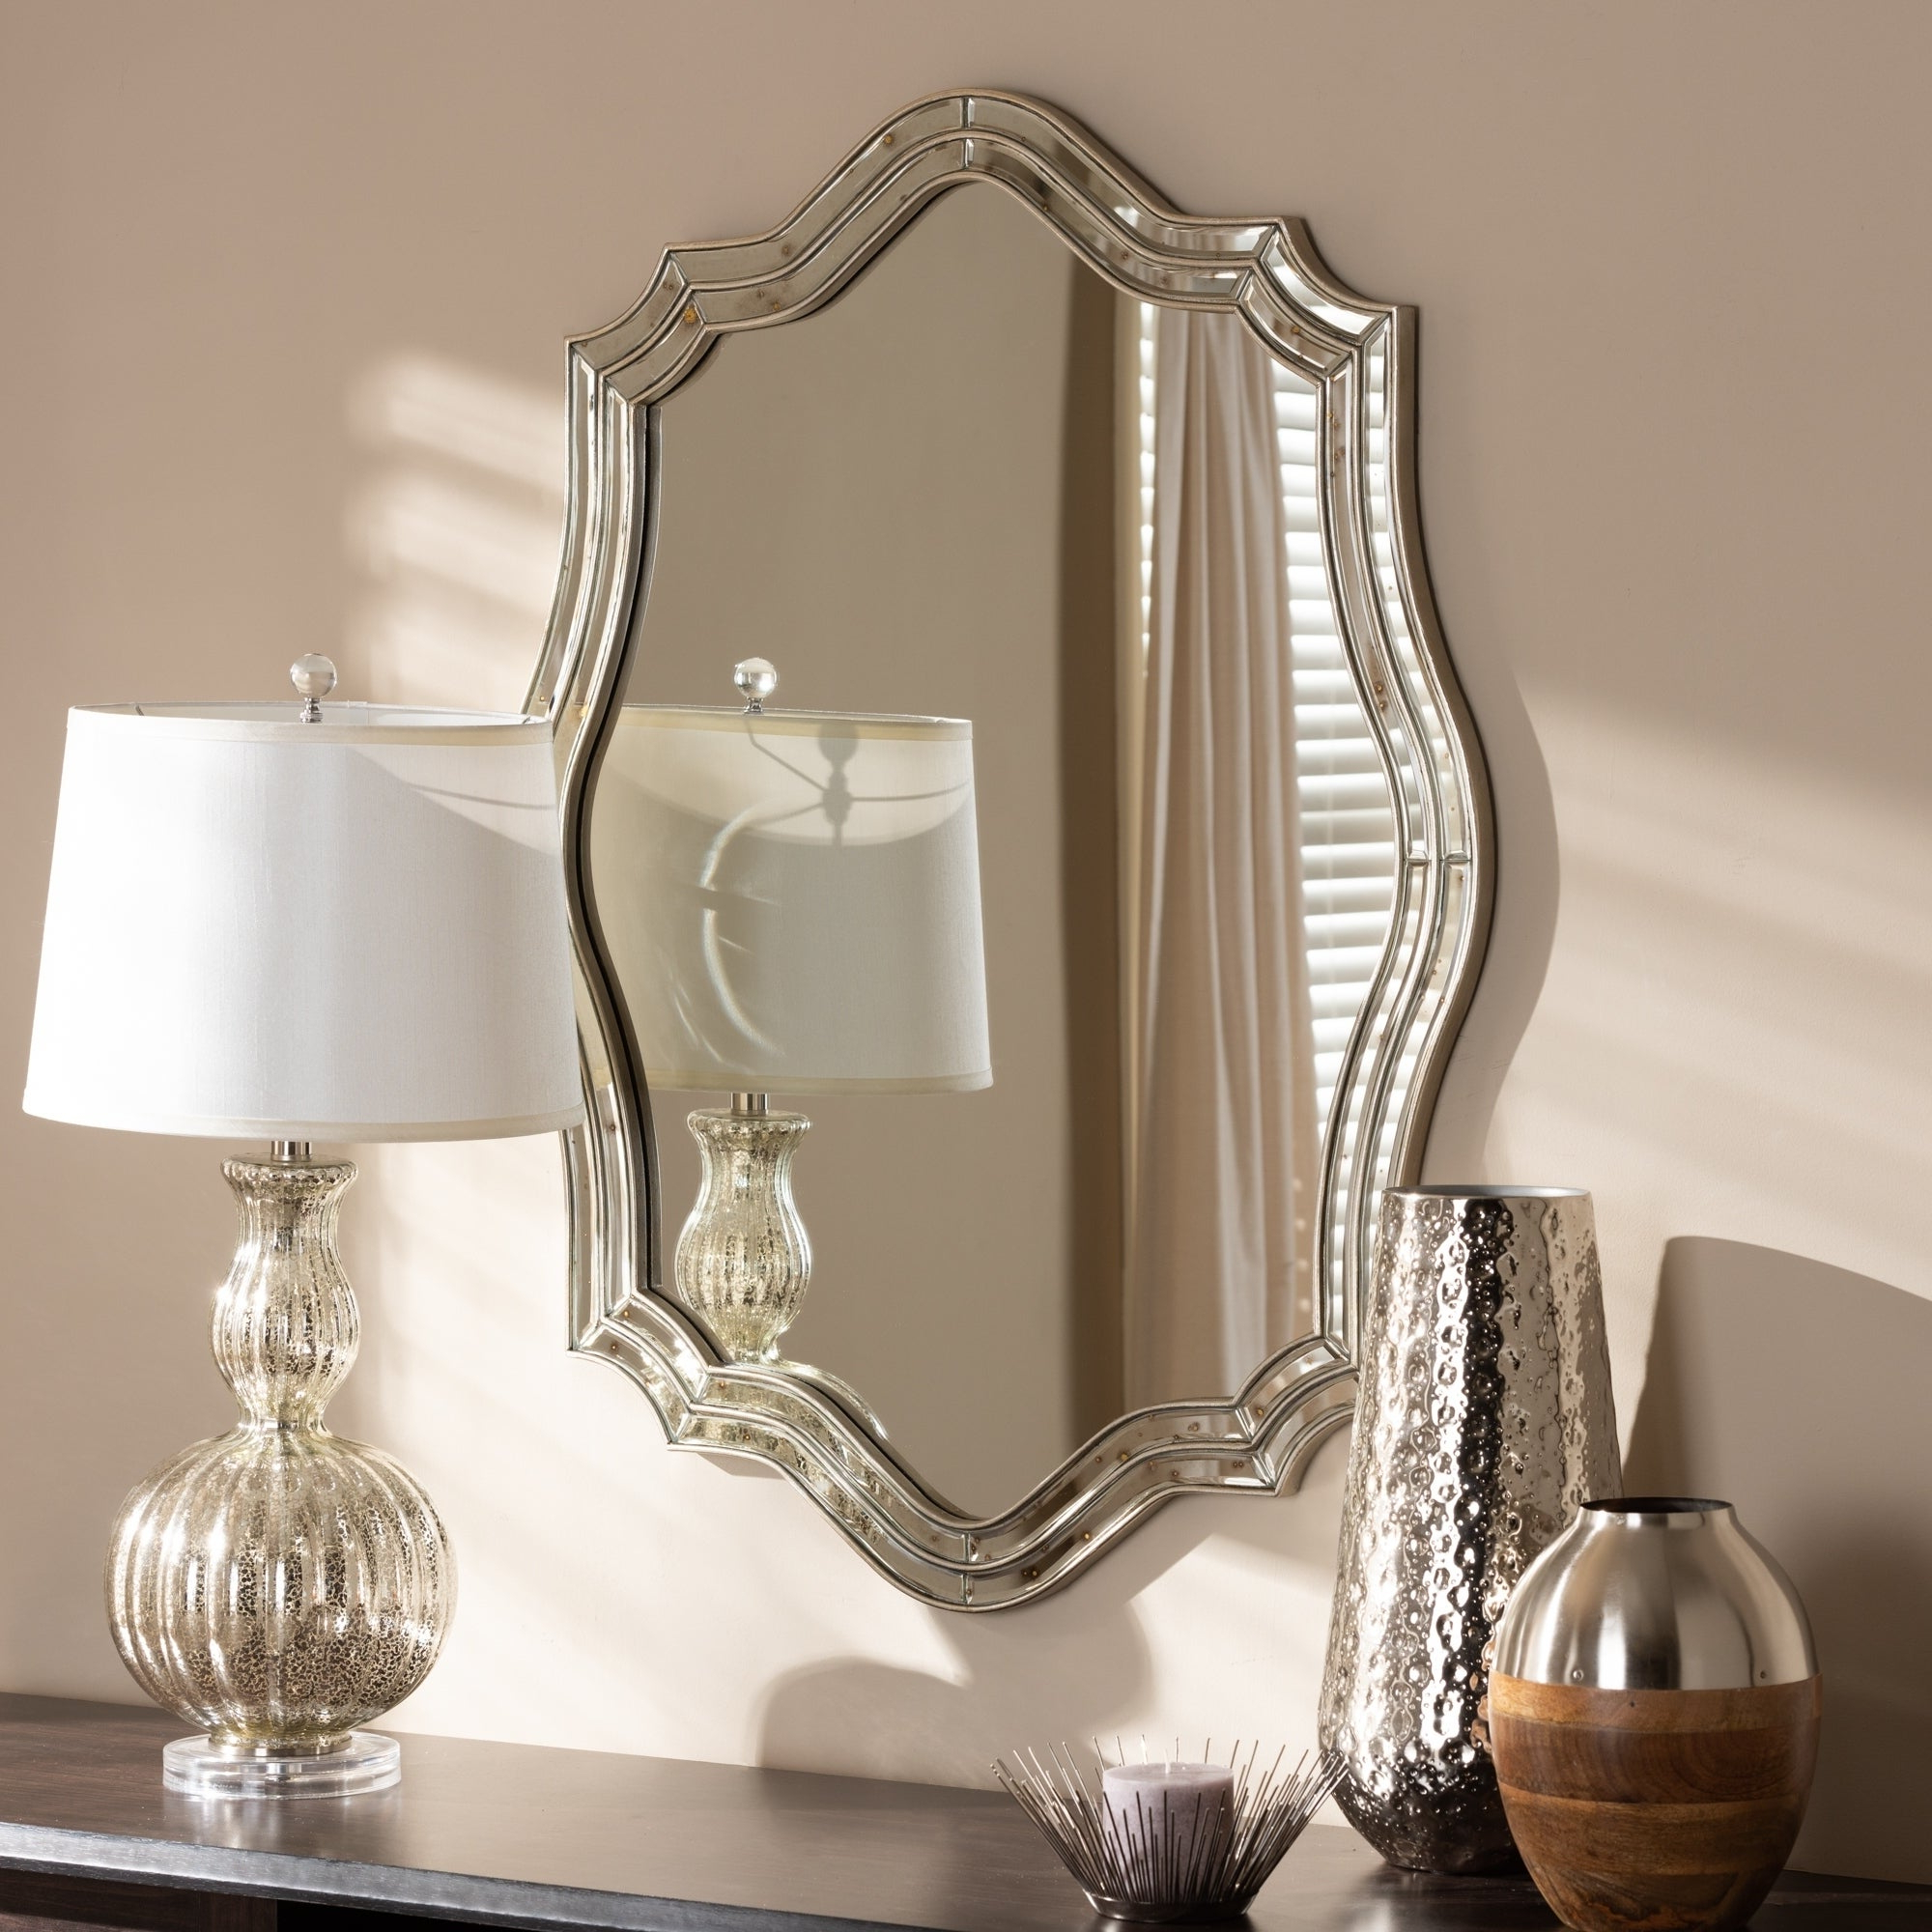 Preferred Deco Wall Mirrors Intended For Art Deco Antique Silver Wall Mirrorbaxton Studio – Antique Silver (View 17 of 20)